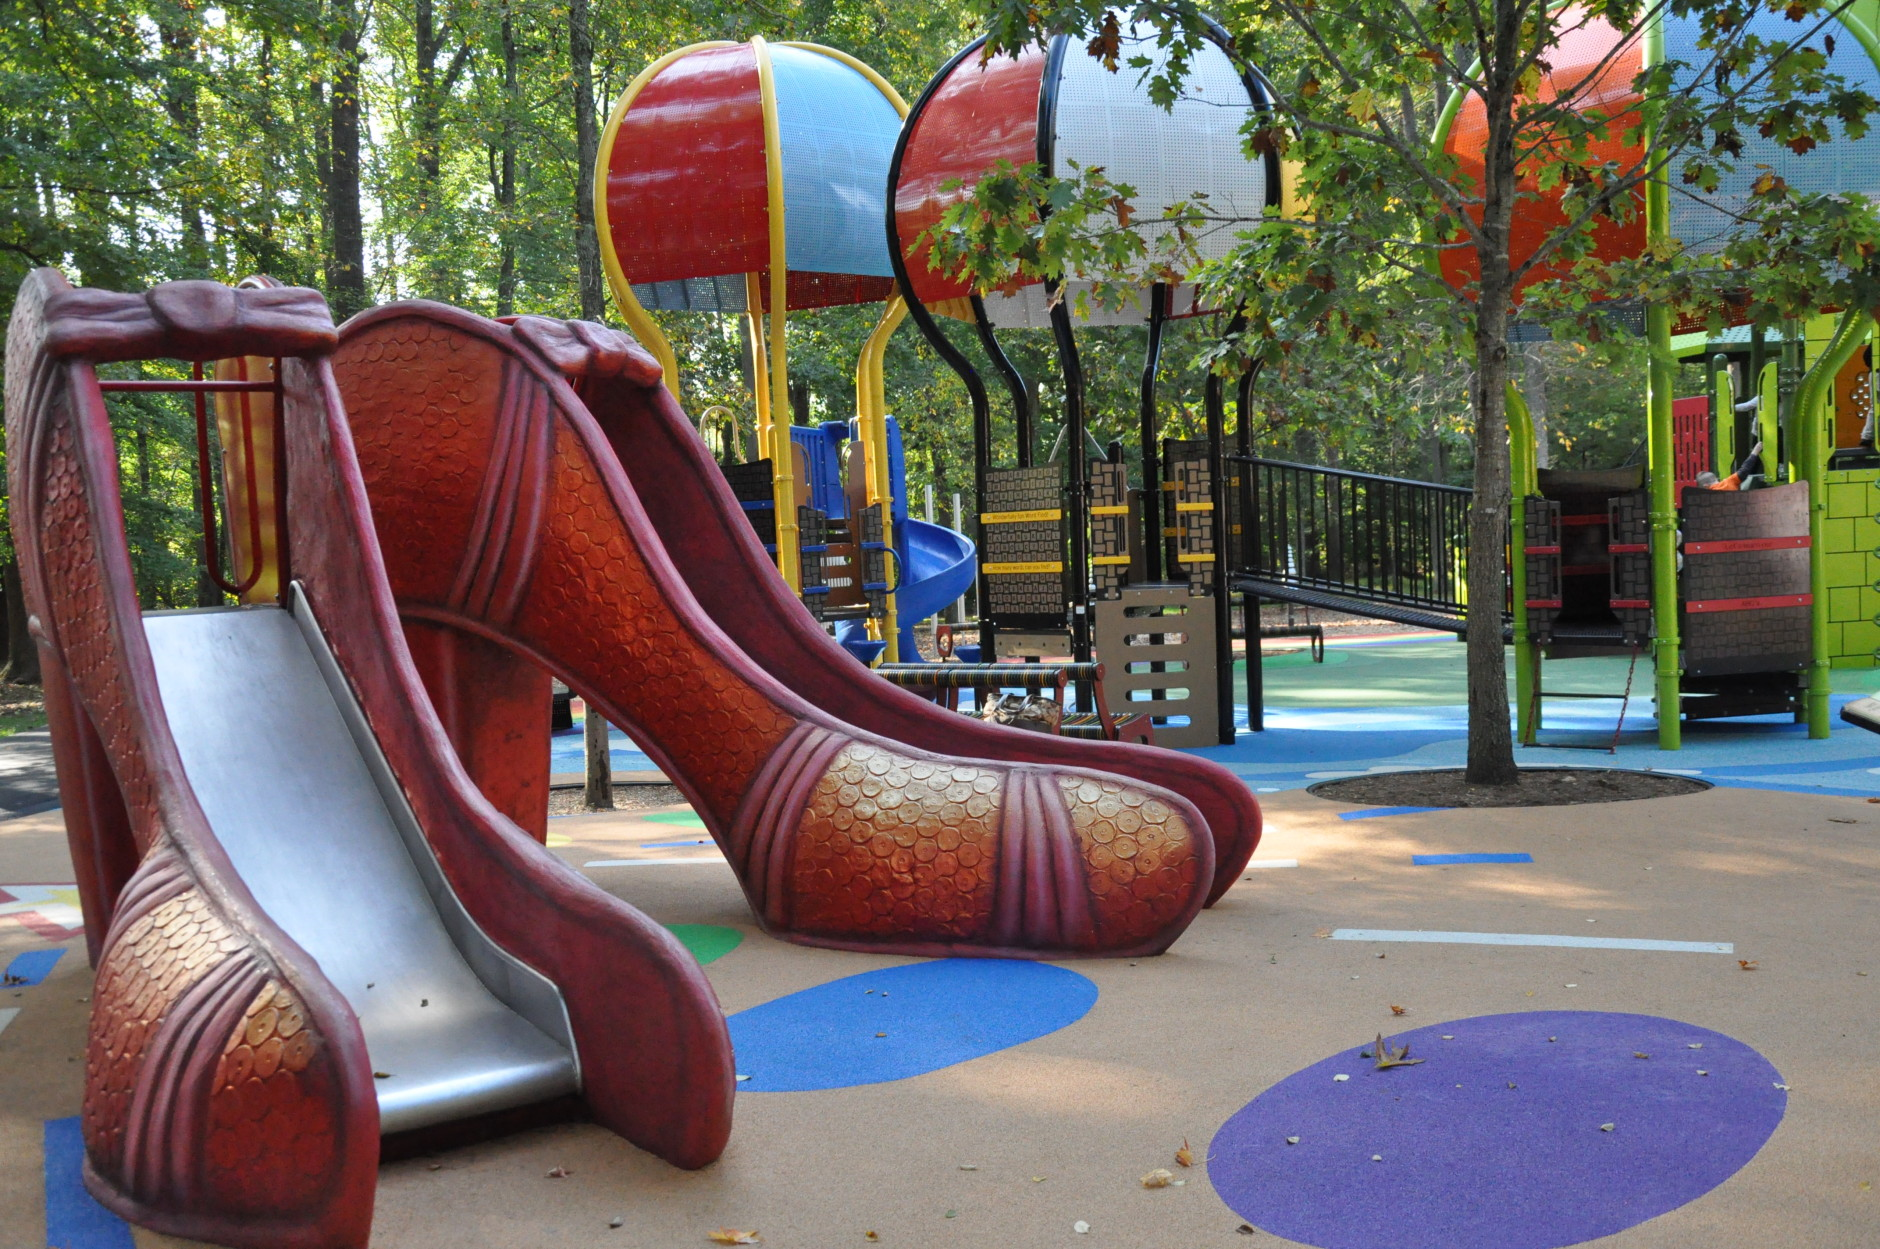 Flying monkeys, a yellow brick road and a ruby red slipper slide are just a few attractions at one of the area's newest storybook-themed playgrounds. (WTOP/Rachel Nania)